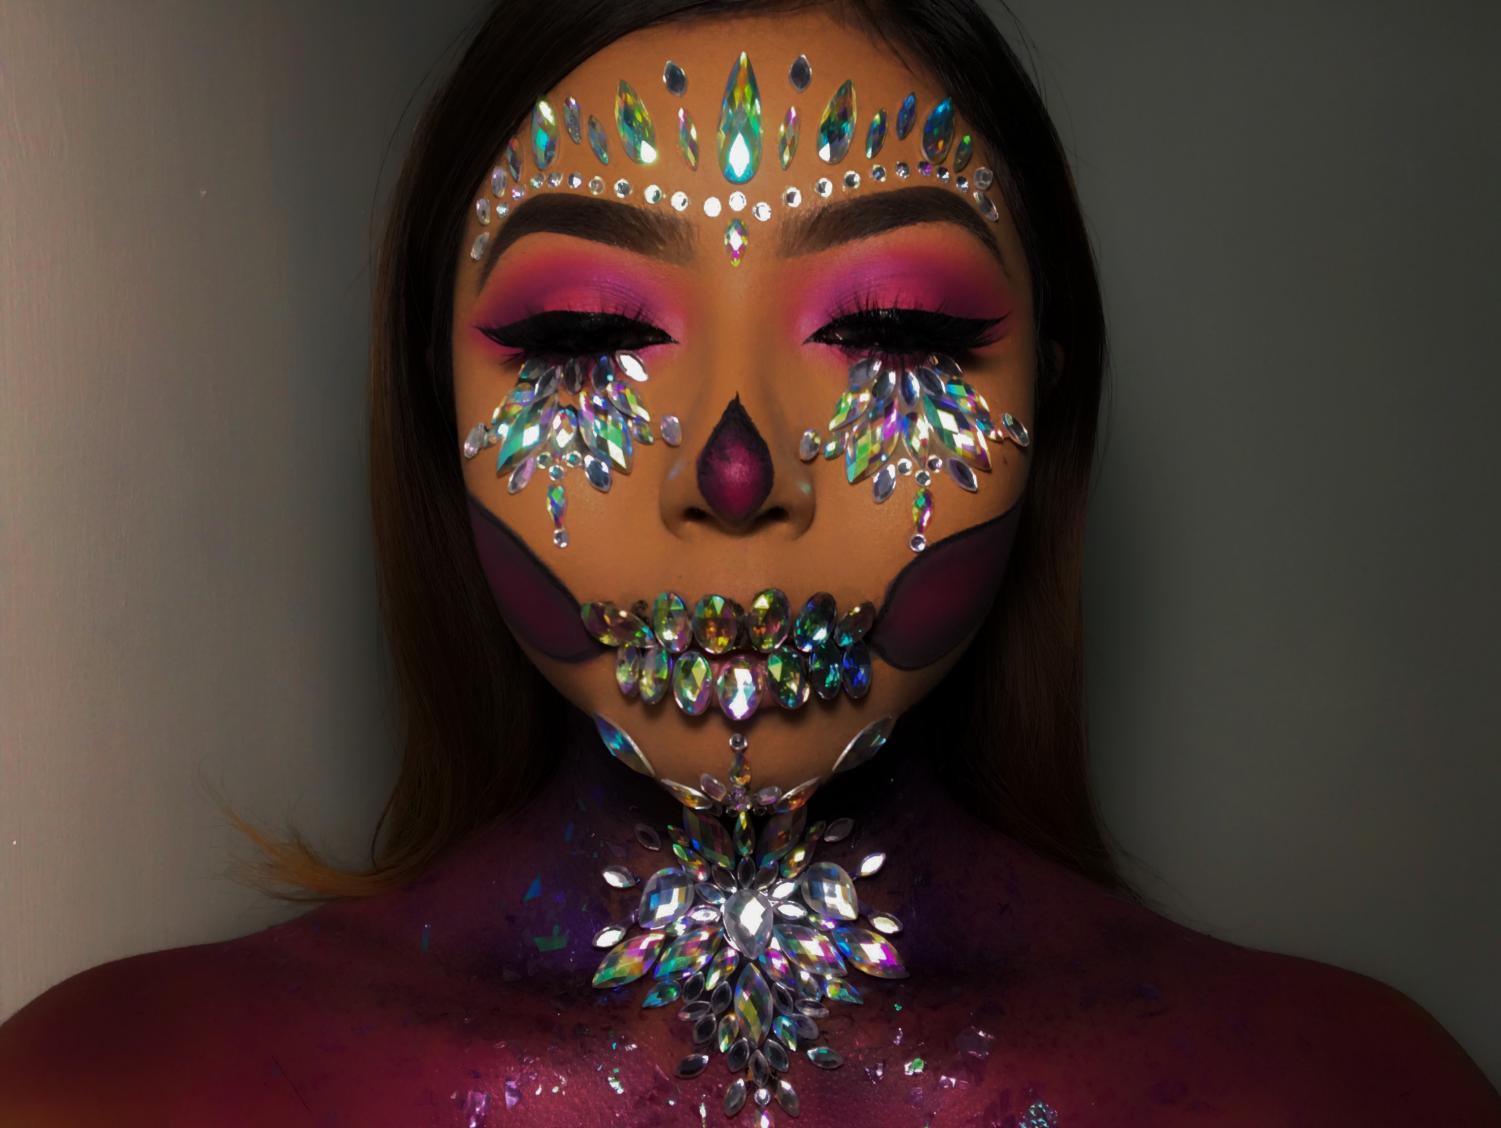 One of the works that the make-up artist does